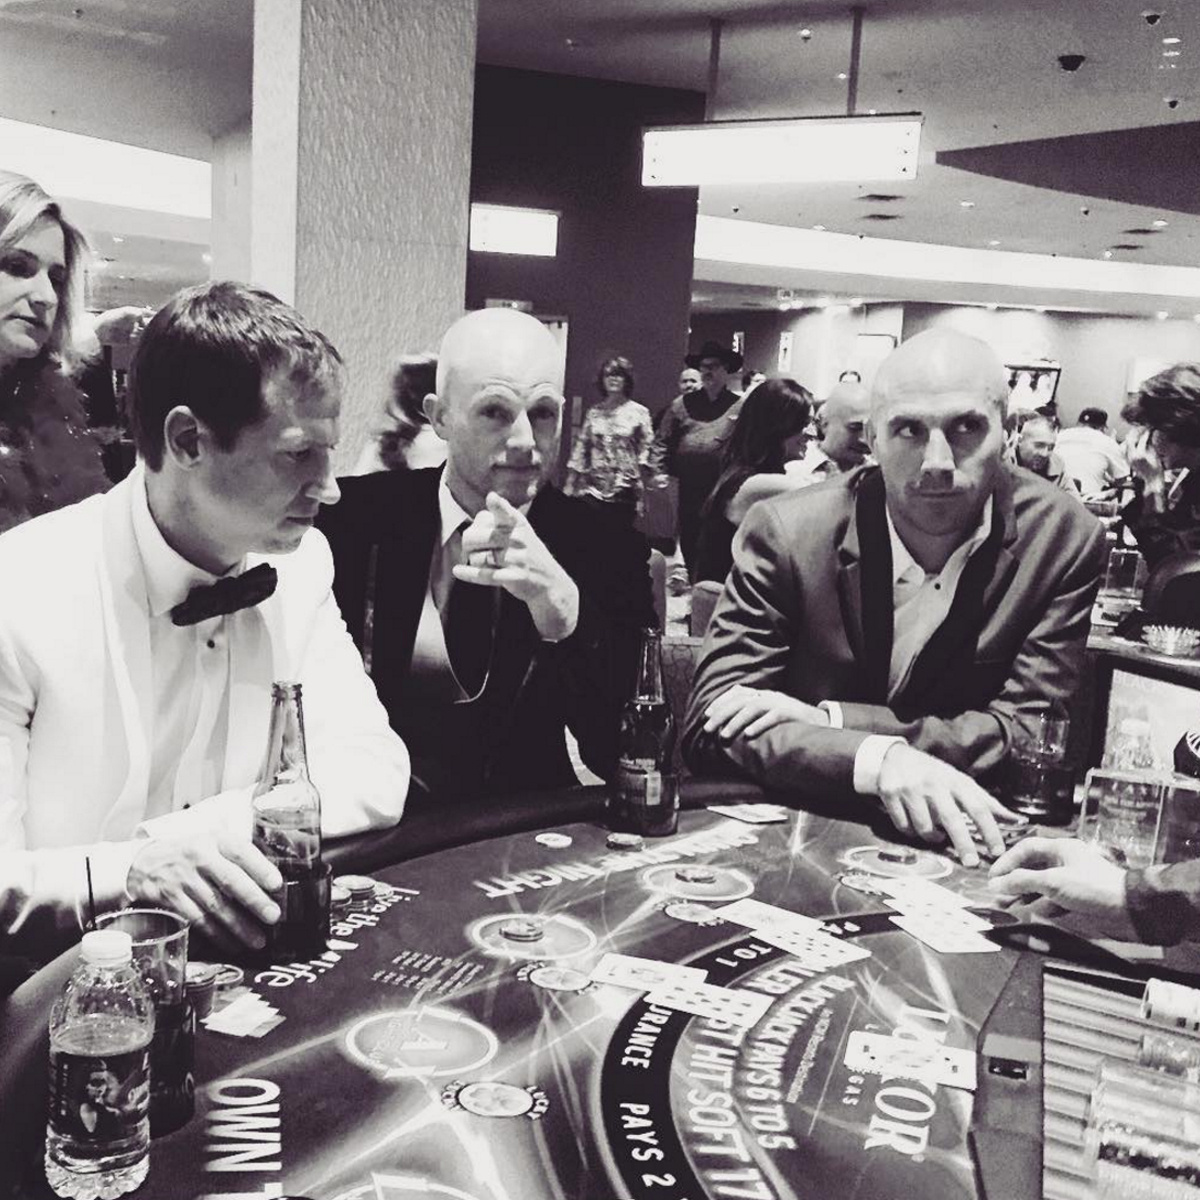 Black and white photo of 3 guys in suits sitting at a poker table.